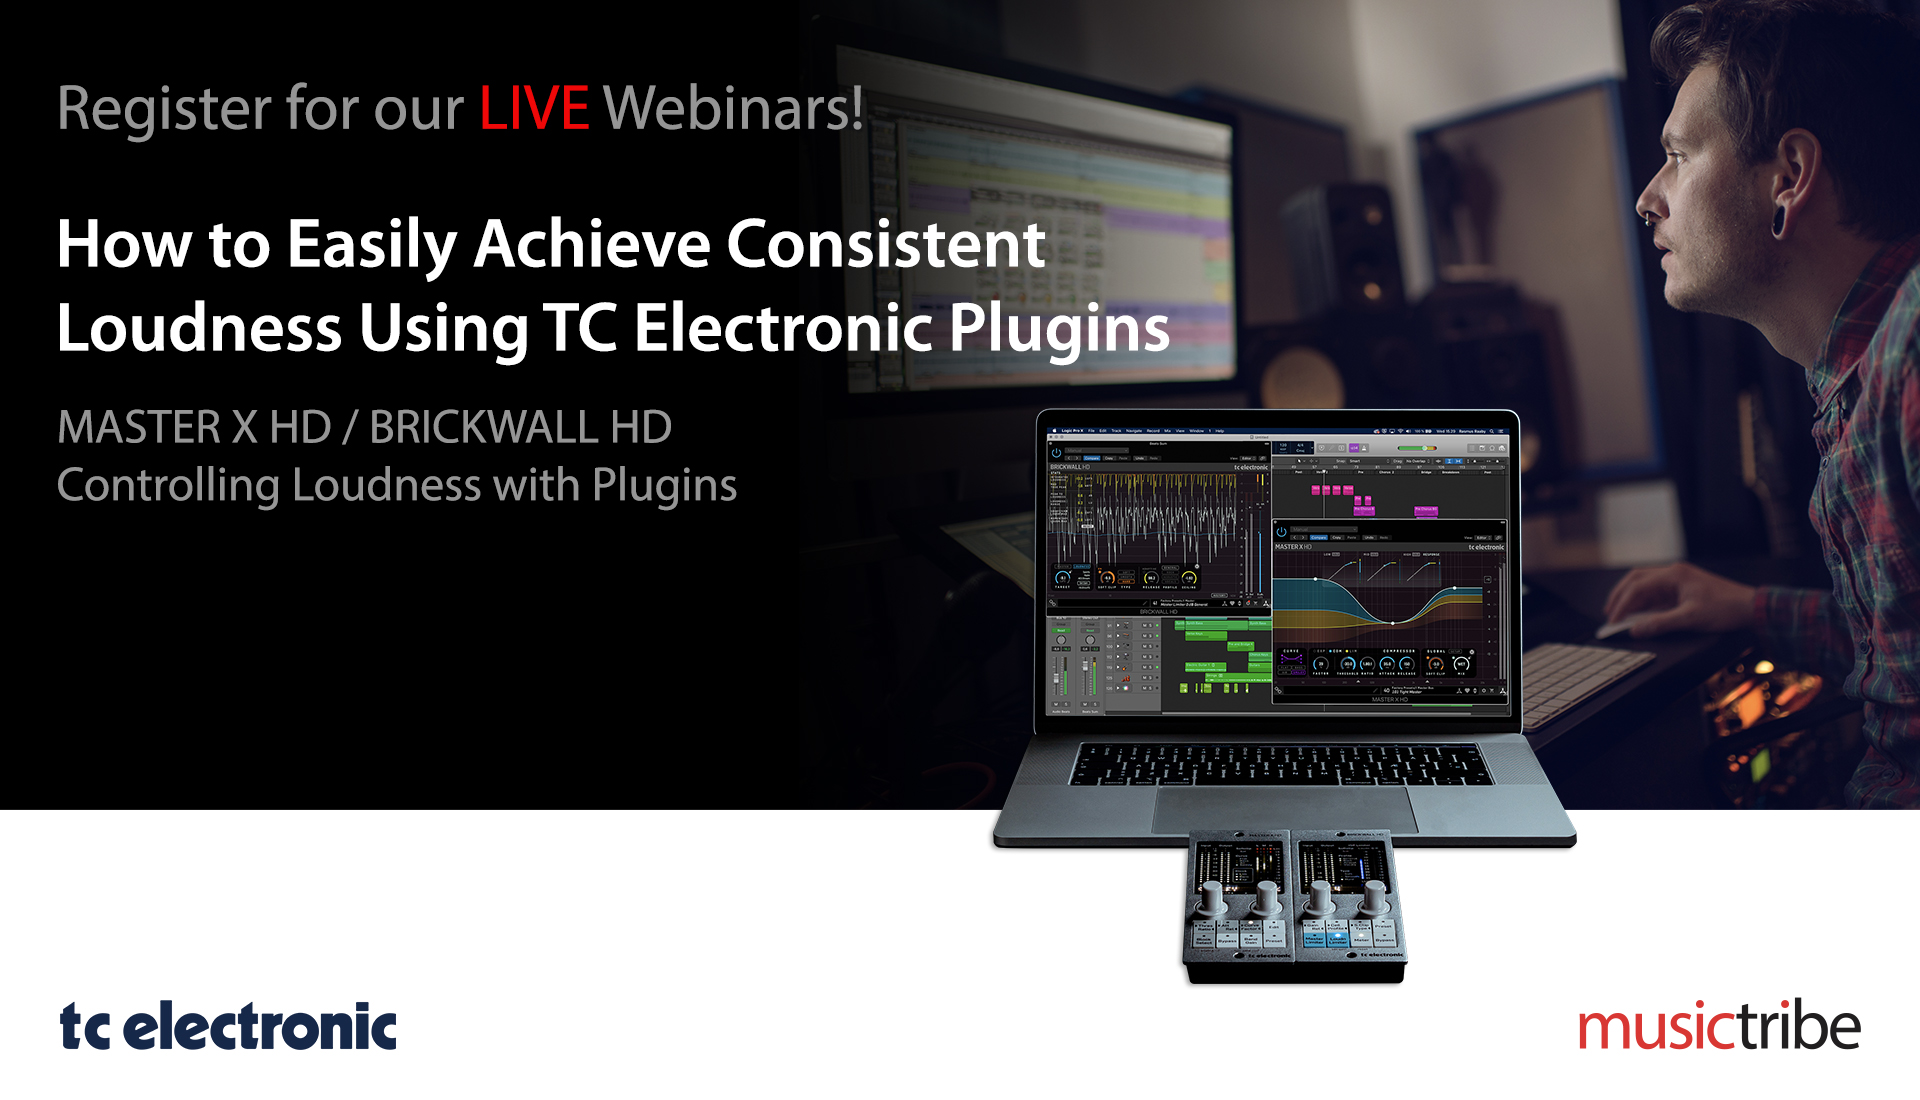 TC Electronic LIVE Webinar: How to Easily Achieve Consistent Loudness Using TC Electronic Plugins